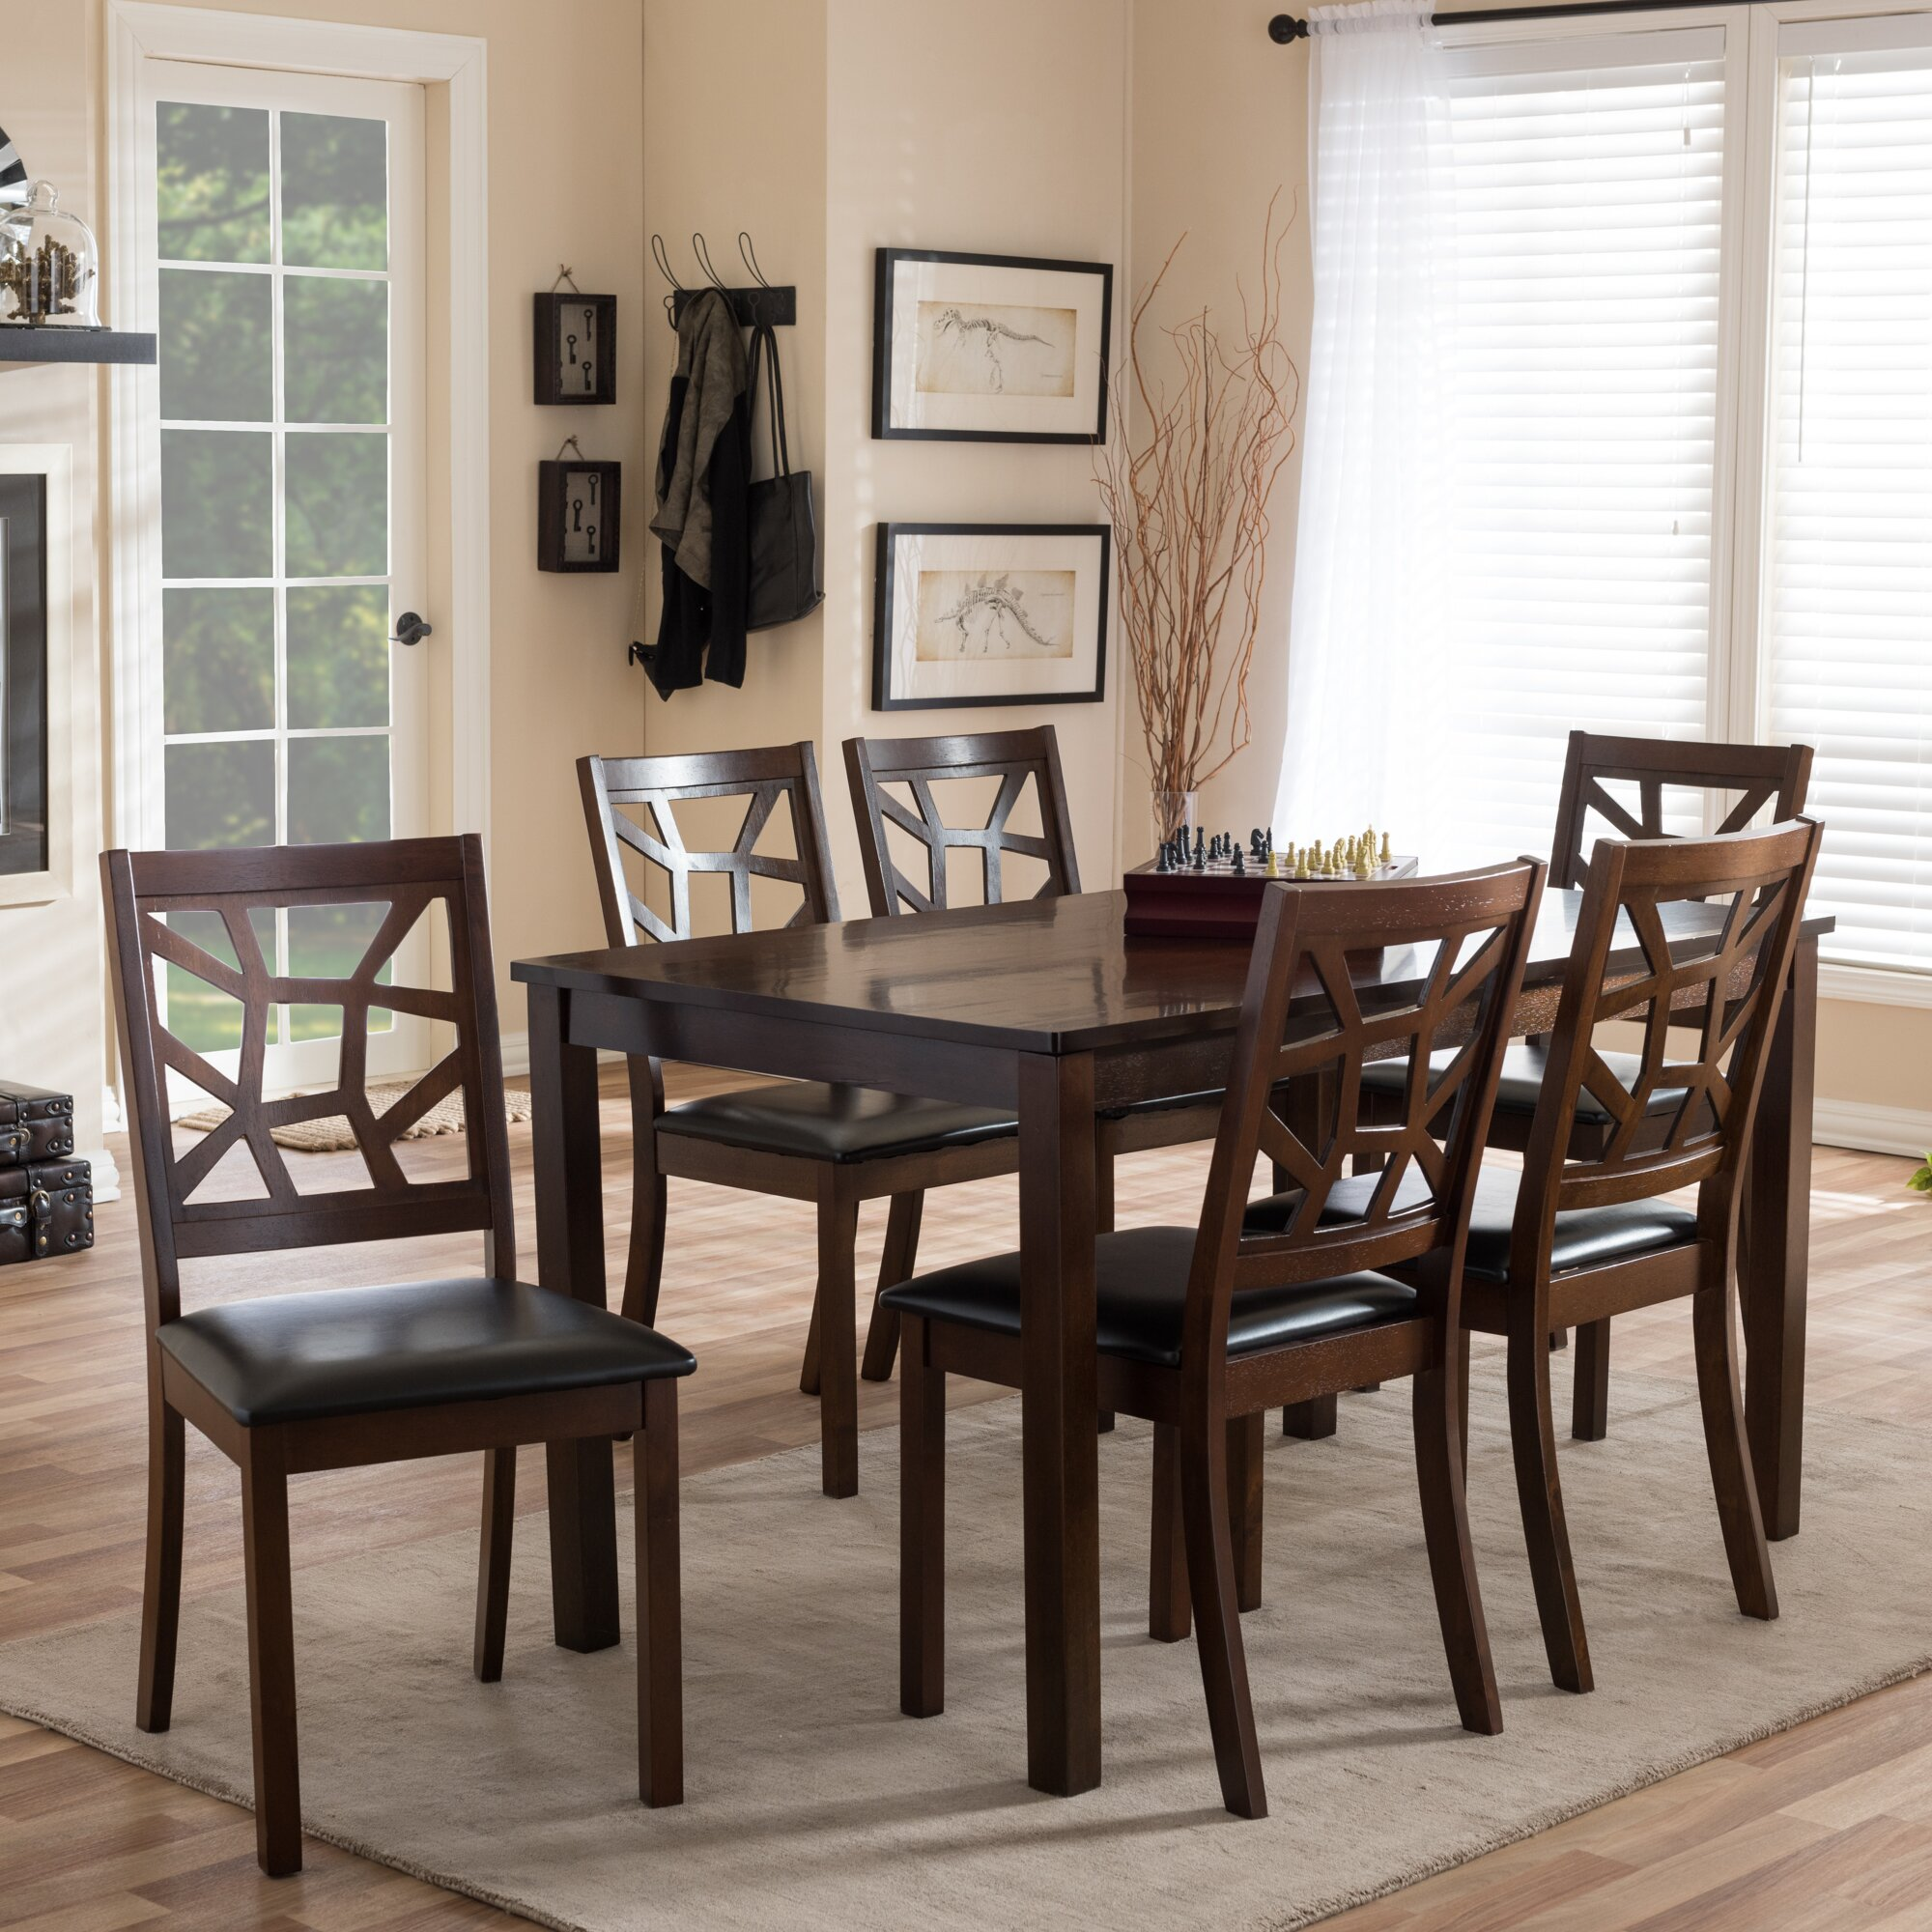 wholesale interiors baxton studio 7 piece dining set